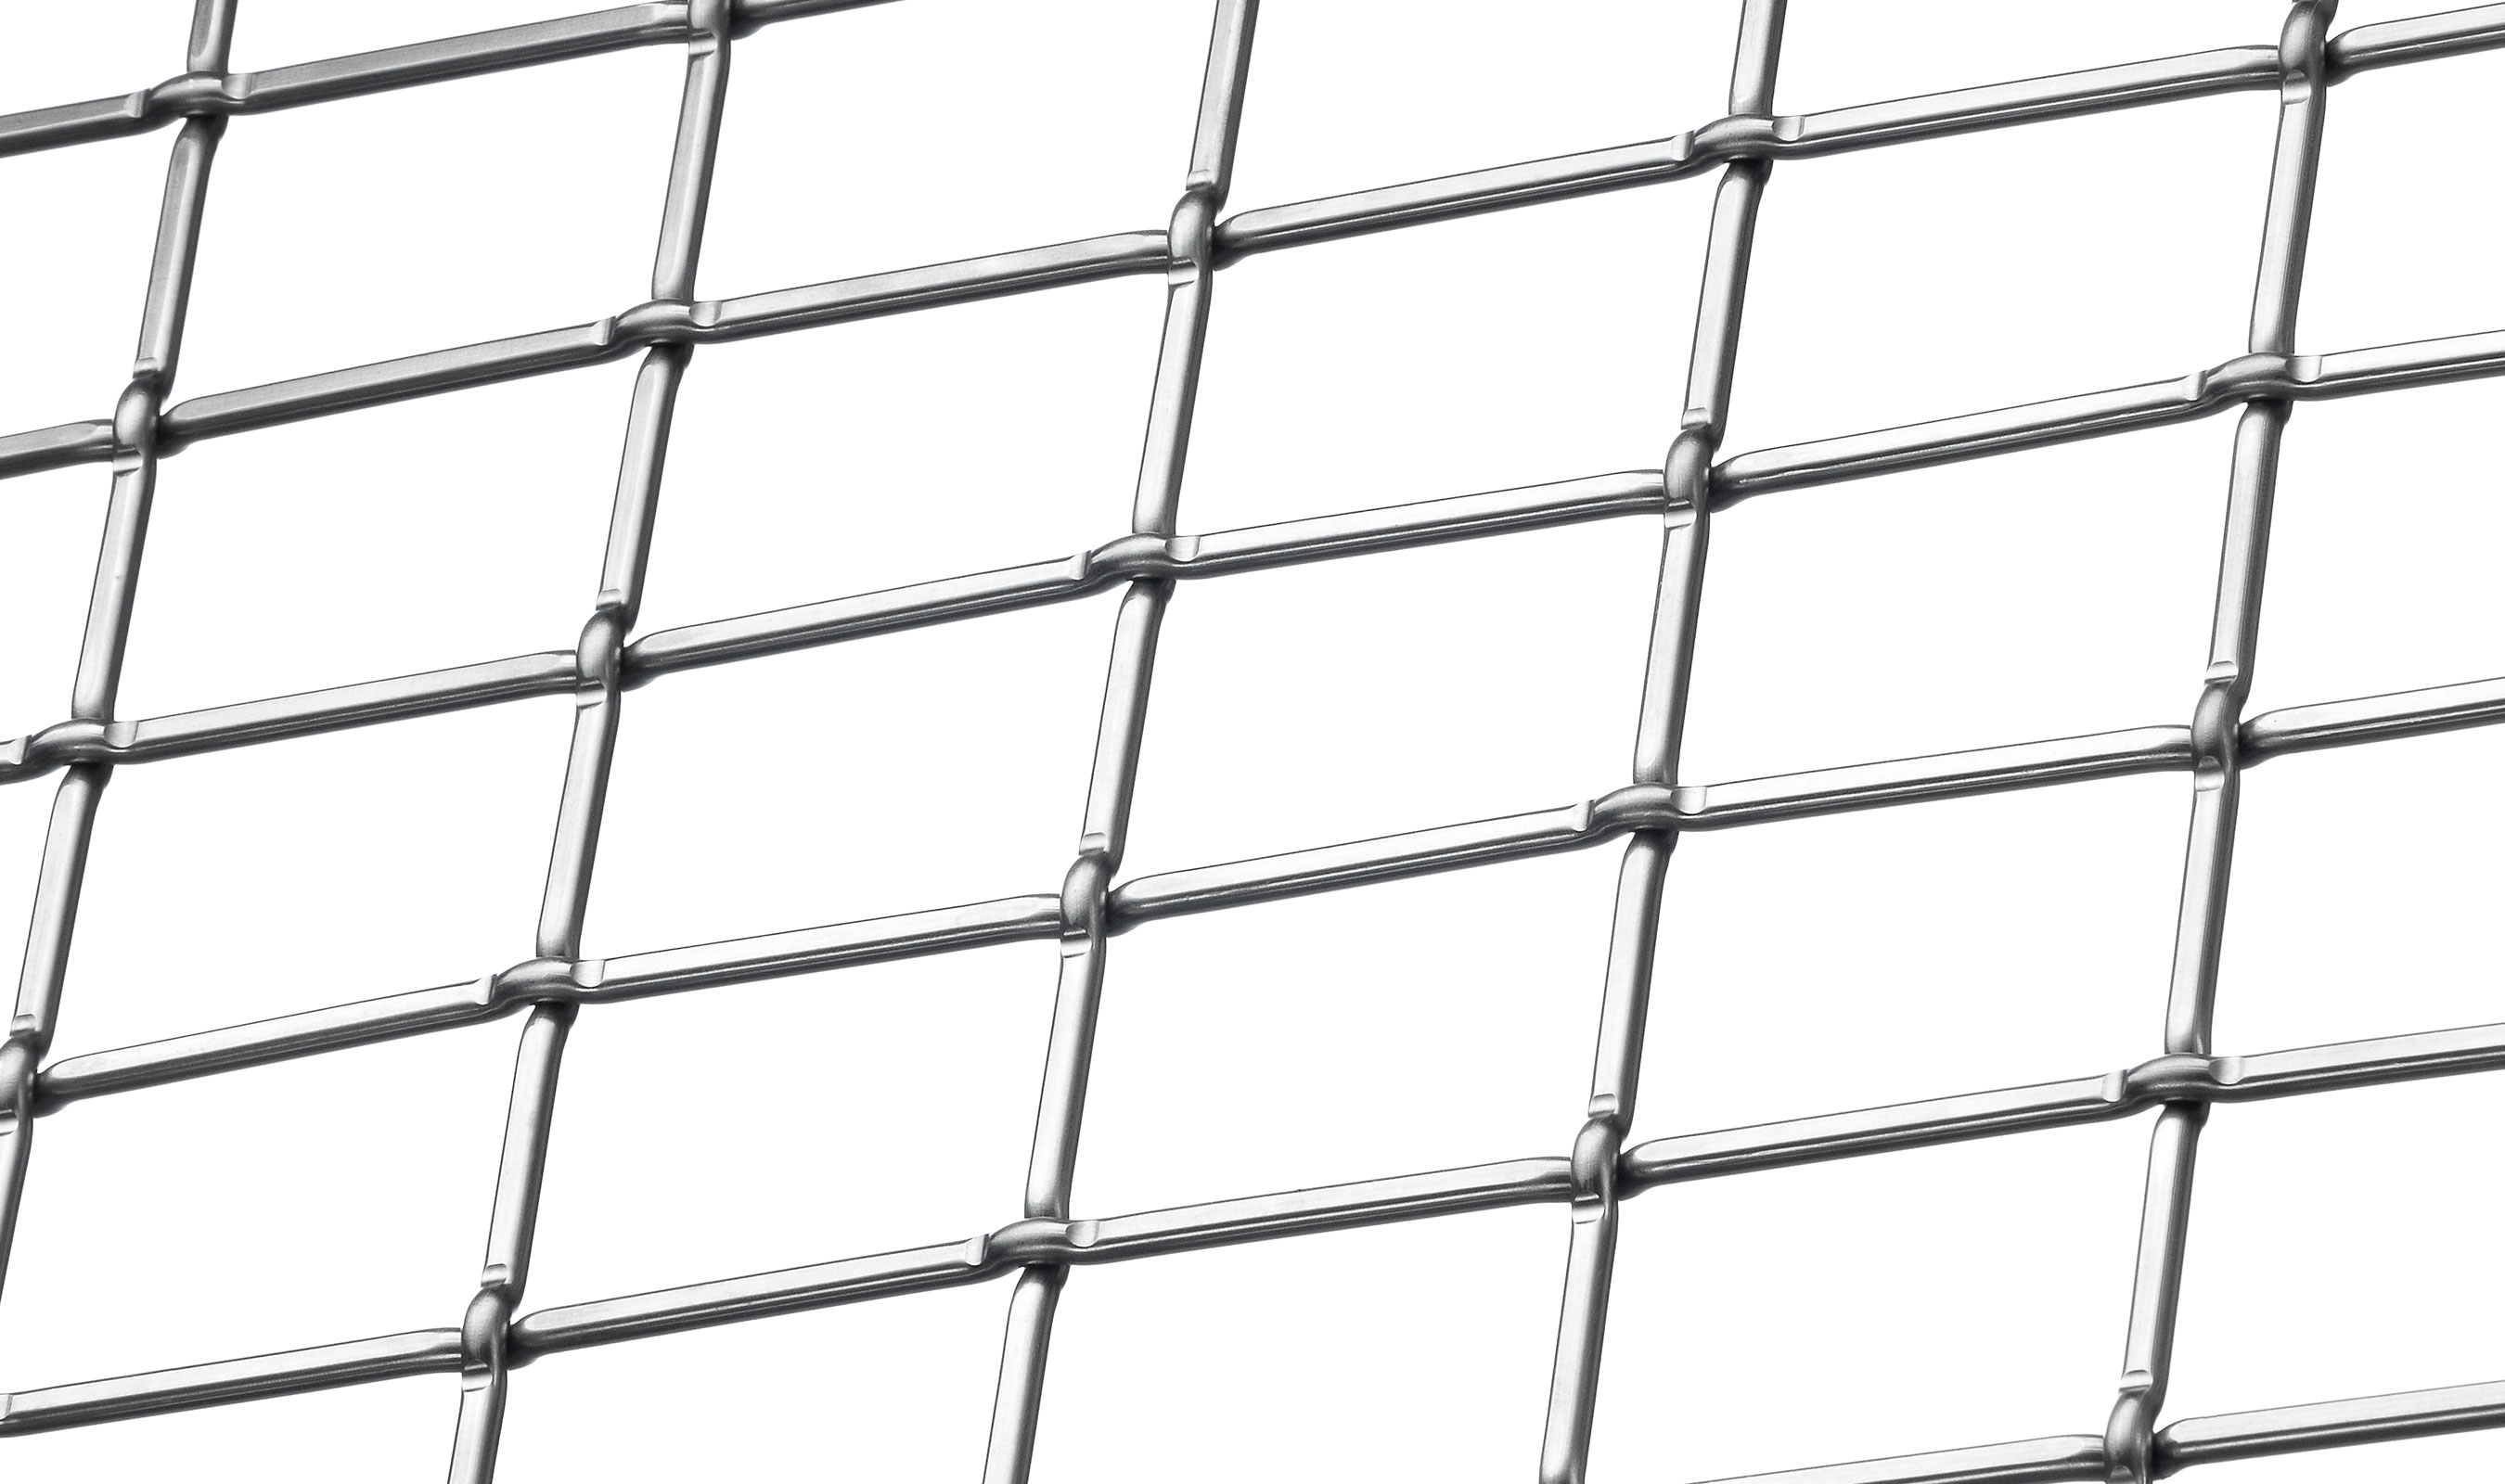 LZ-55 in Stainless architectural wire mesh